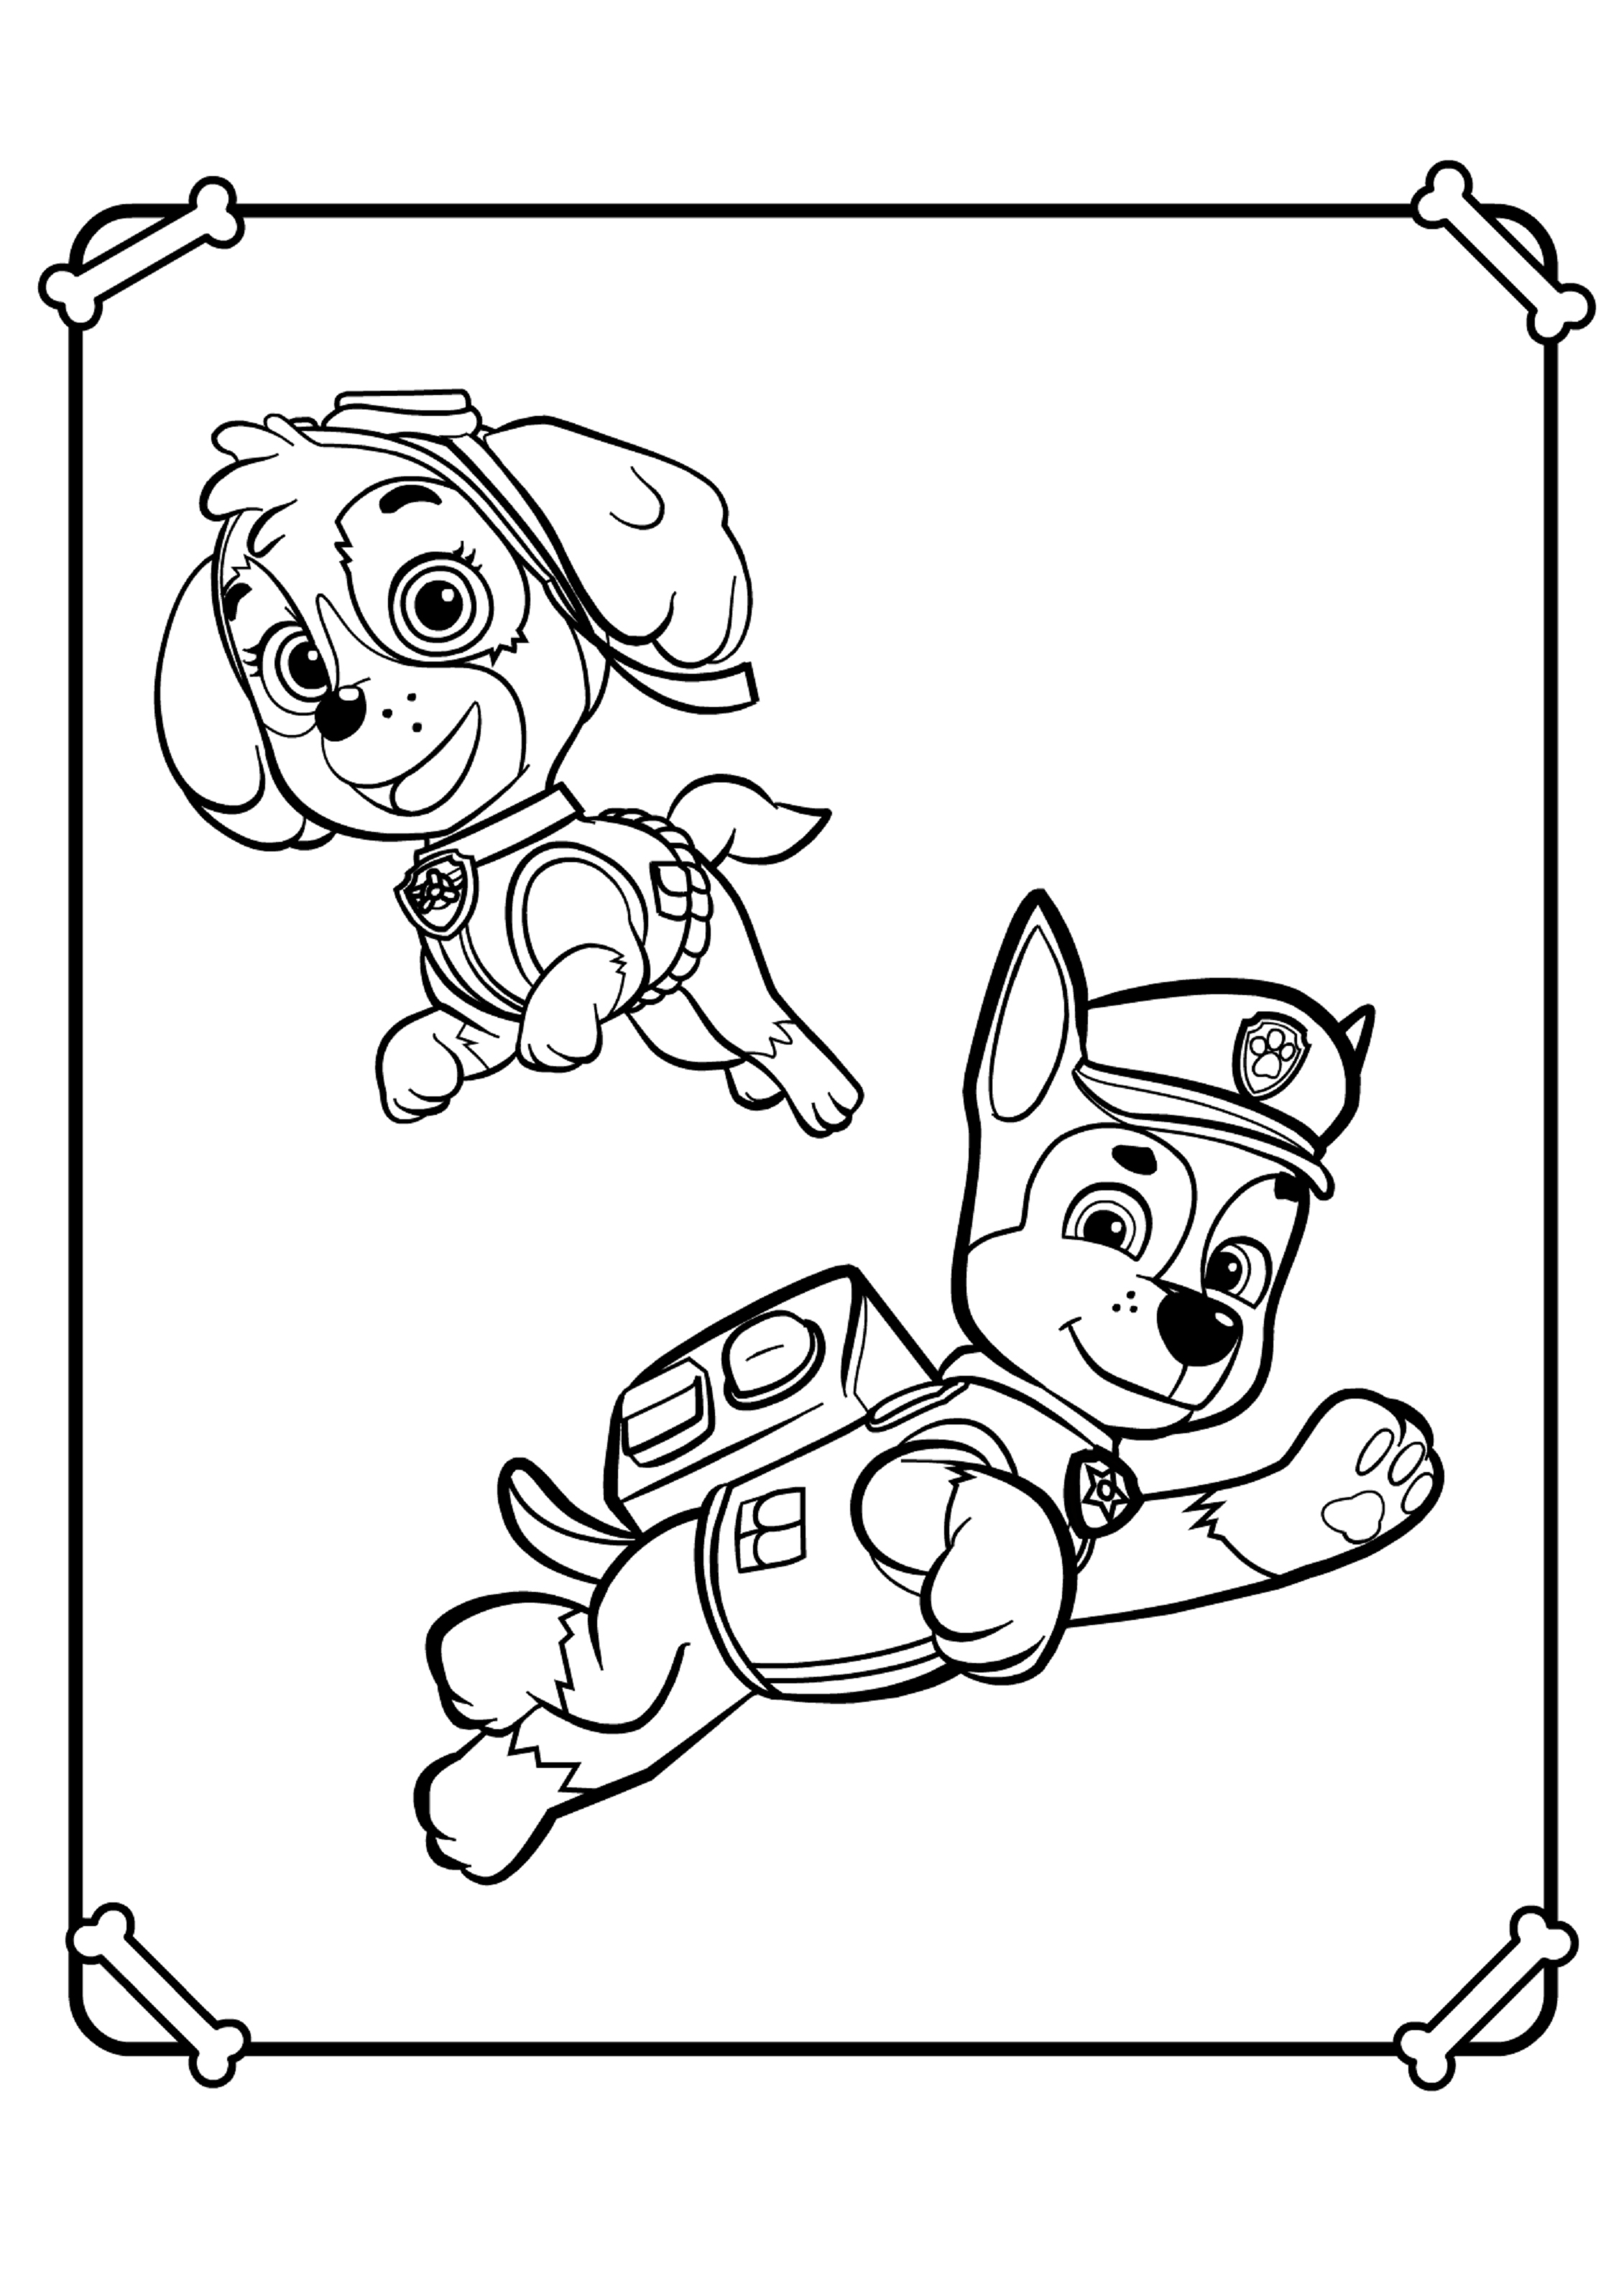 paw patrol chase coloring chase from paw patrol coloring pages cartoons coloring coloring patrol paw chase